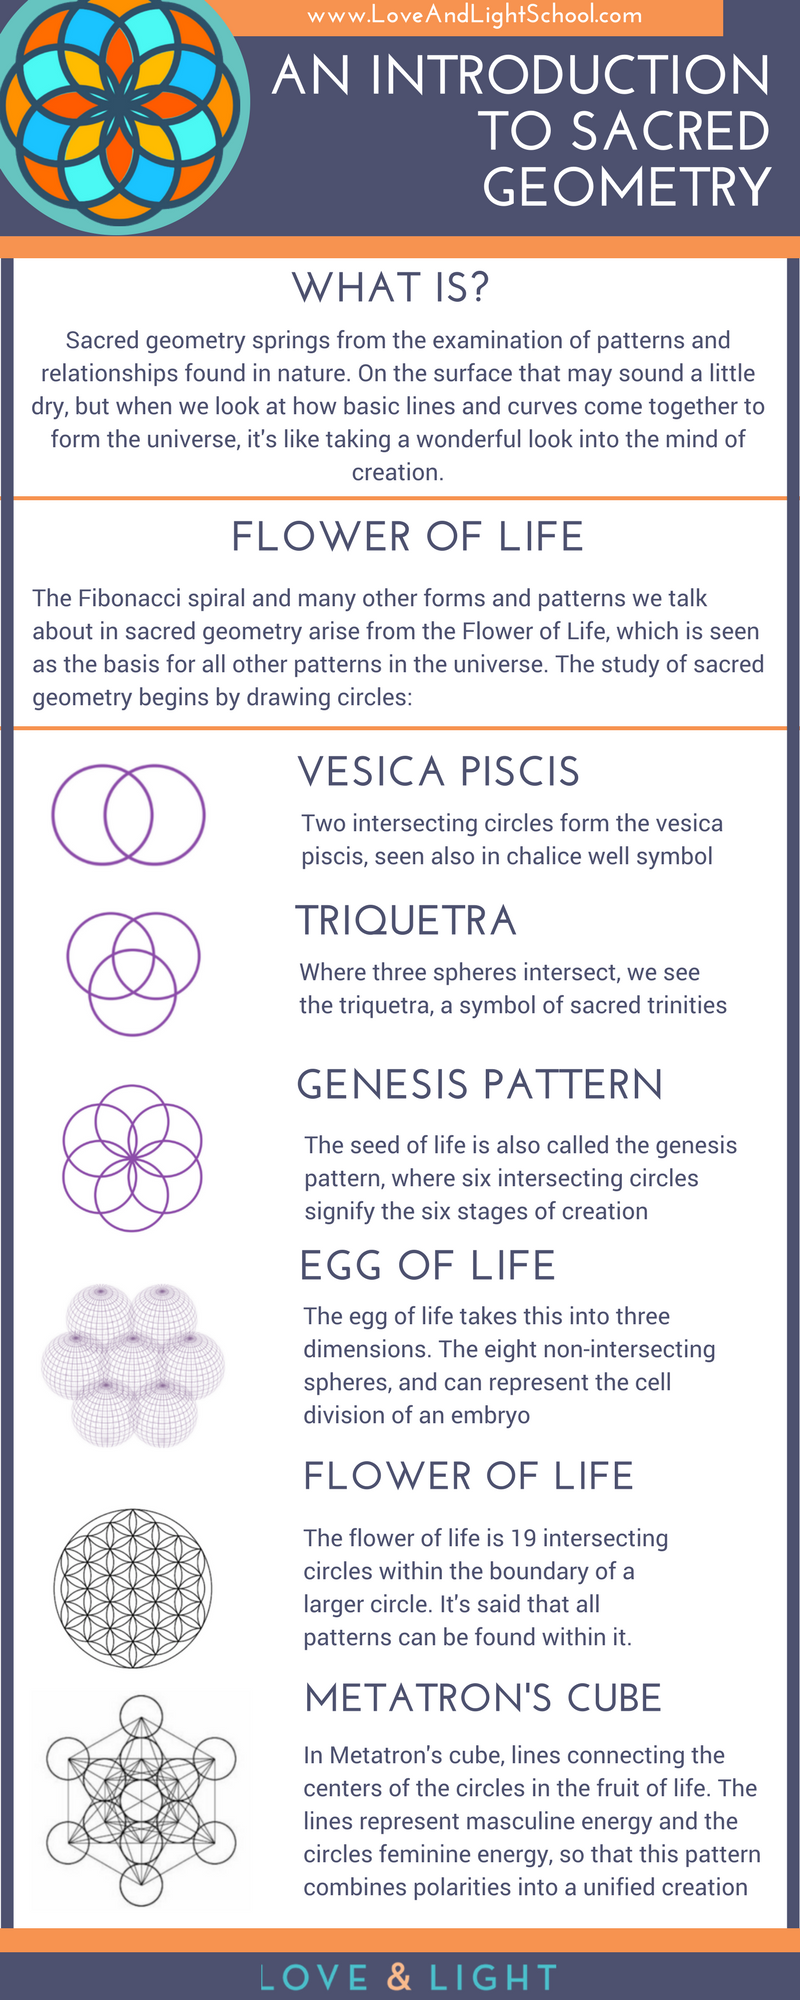 An Introduction To Sacred Geometry With Images Sacred Geometry